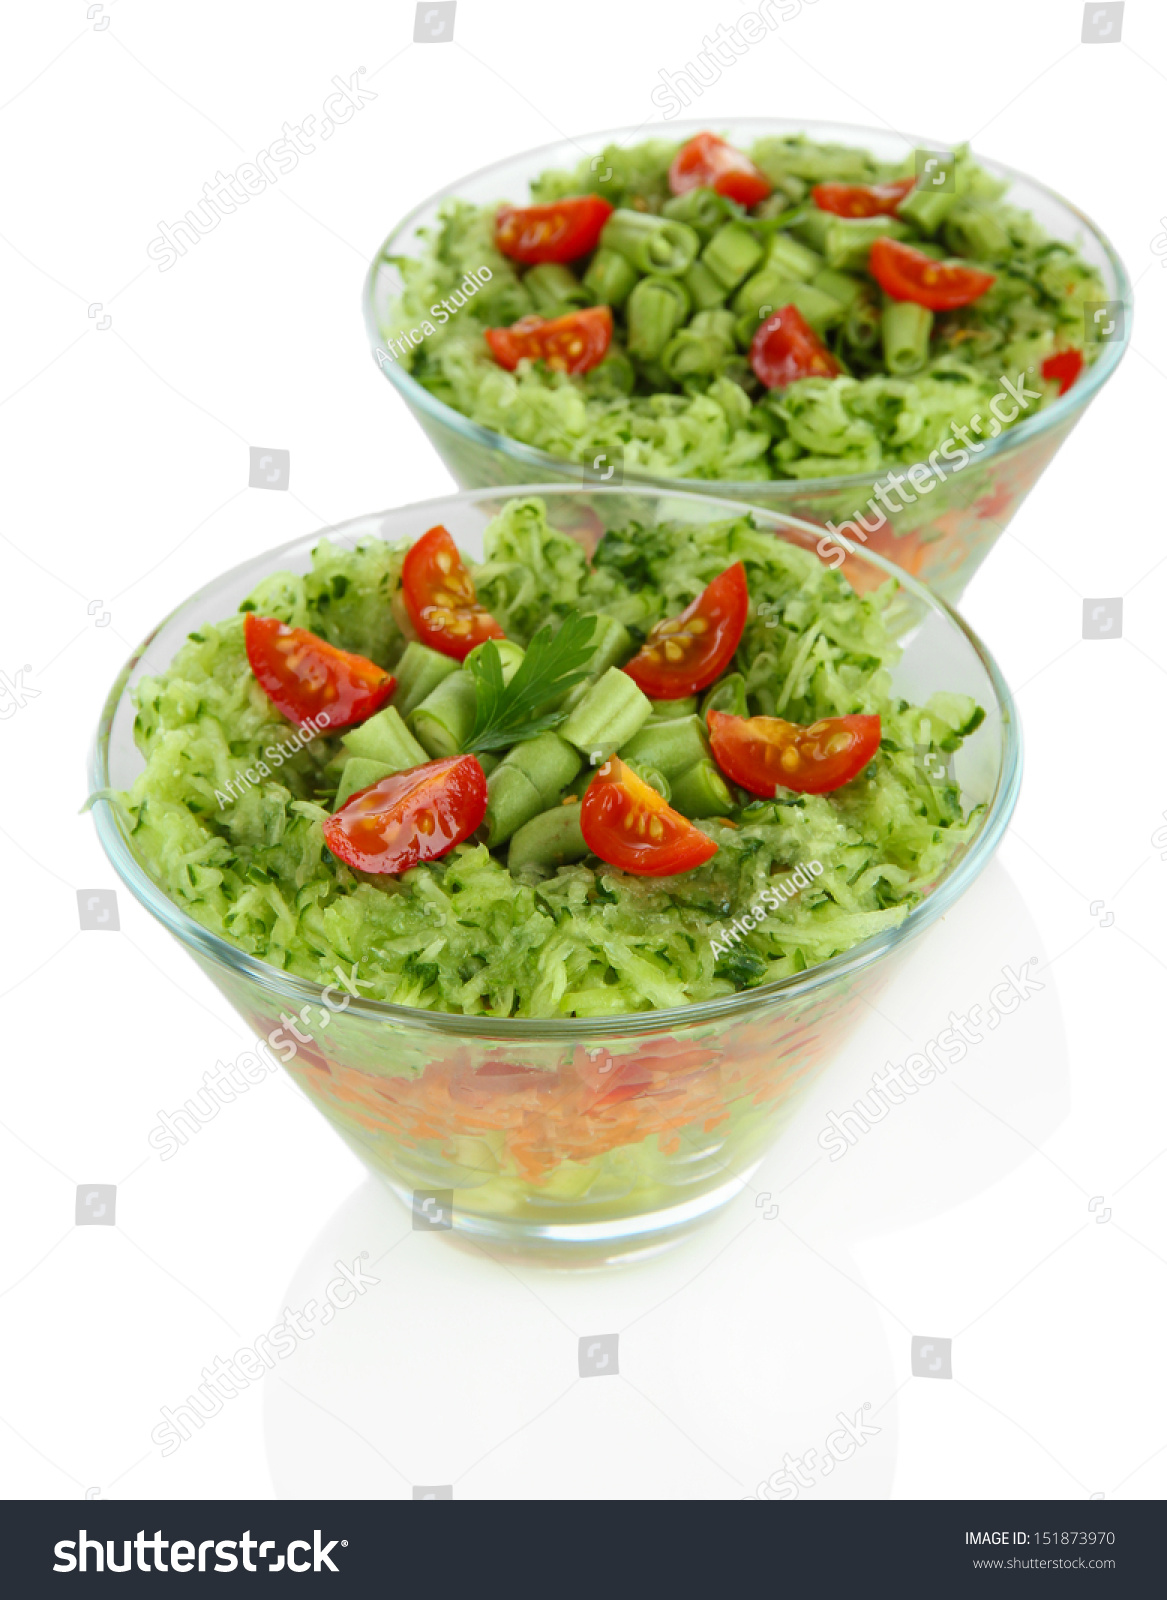 Tasty salad with fresh vegetables isolated on white